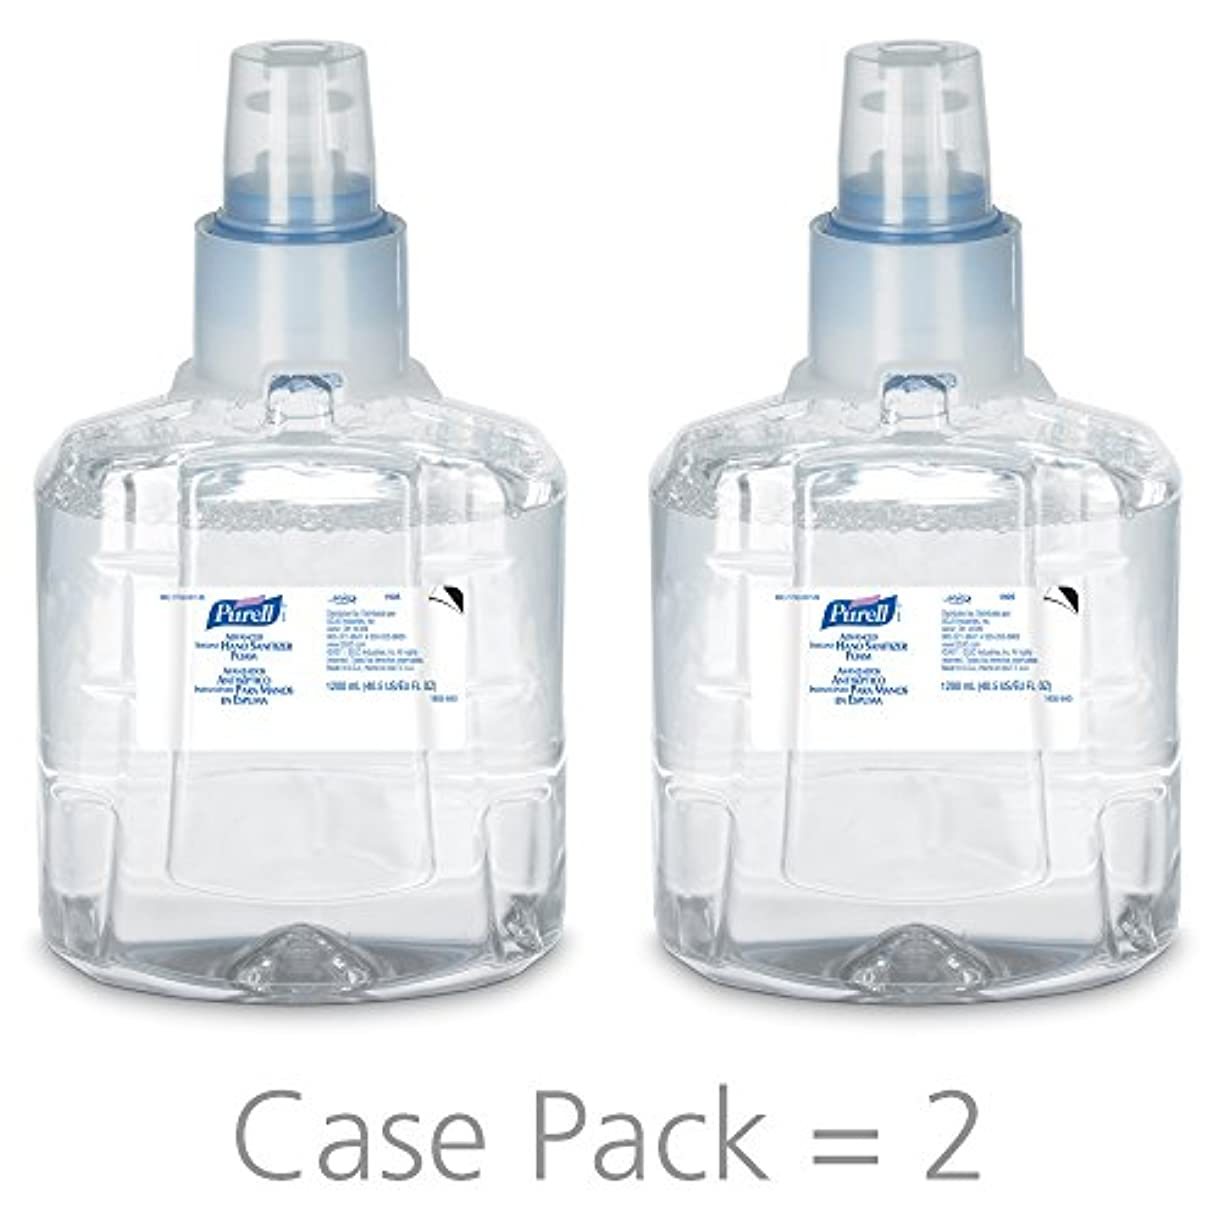 ベリー刺す毎月PURELL 1905-02 1200 mL Advanced Hand Sanitizer Foam, LTX-12 Refill (Pack of 2) by Purell